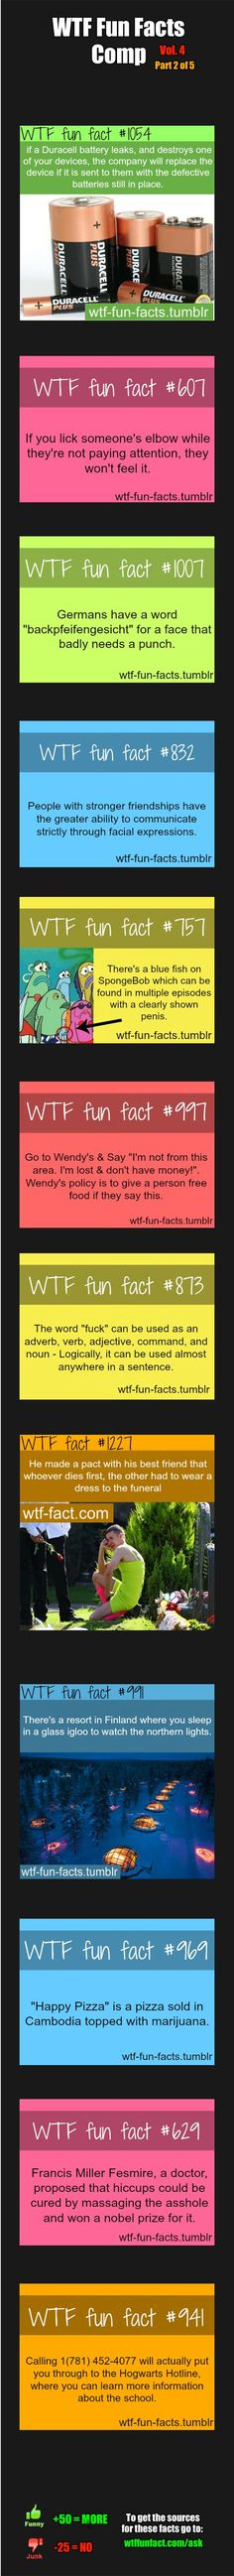 WTF Fun Facts Comp Vol. 4 Part 2